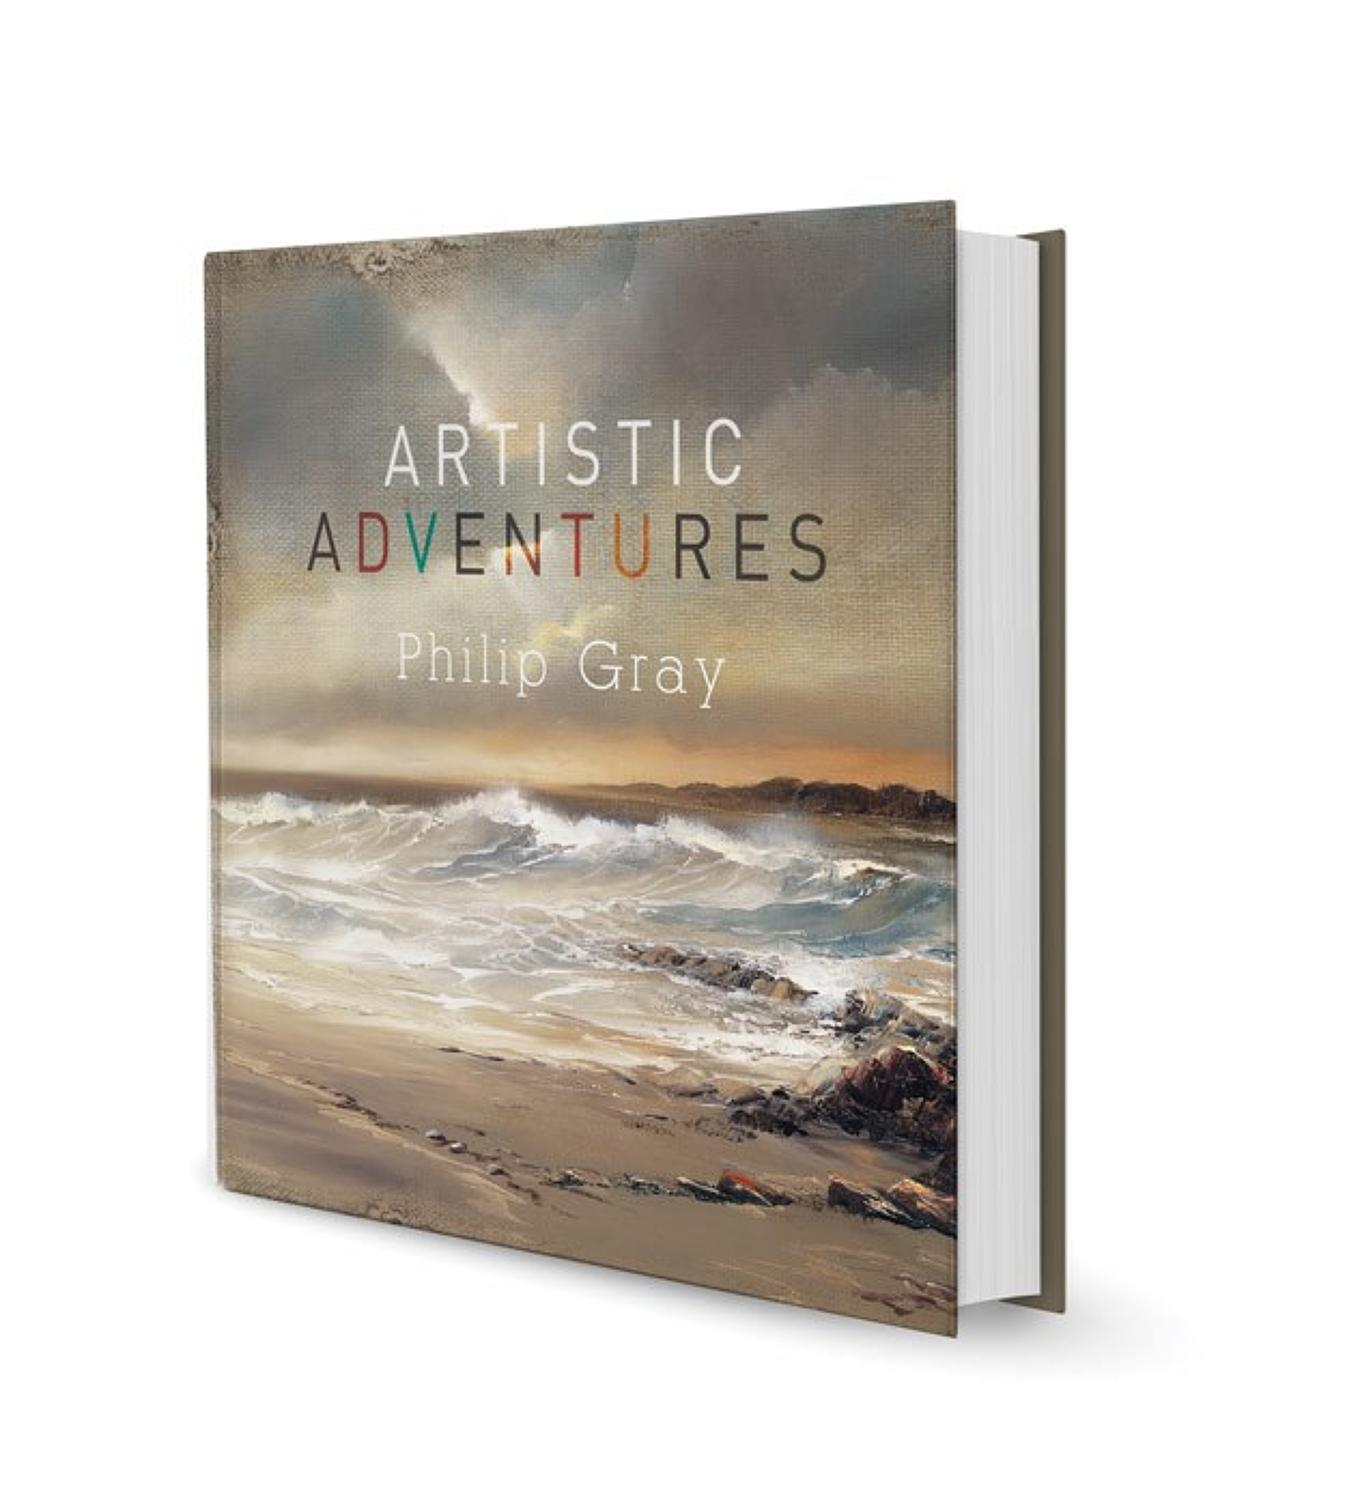 Artistic Adventures Open Edition Book by Philip Gray